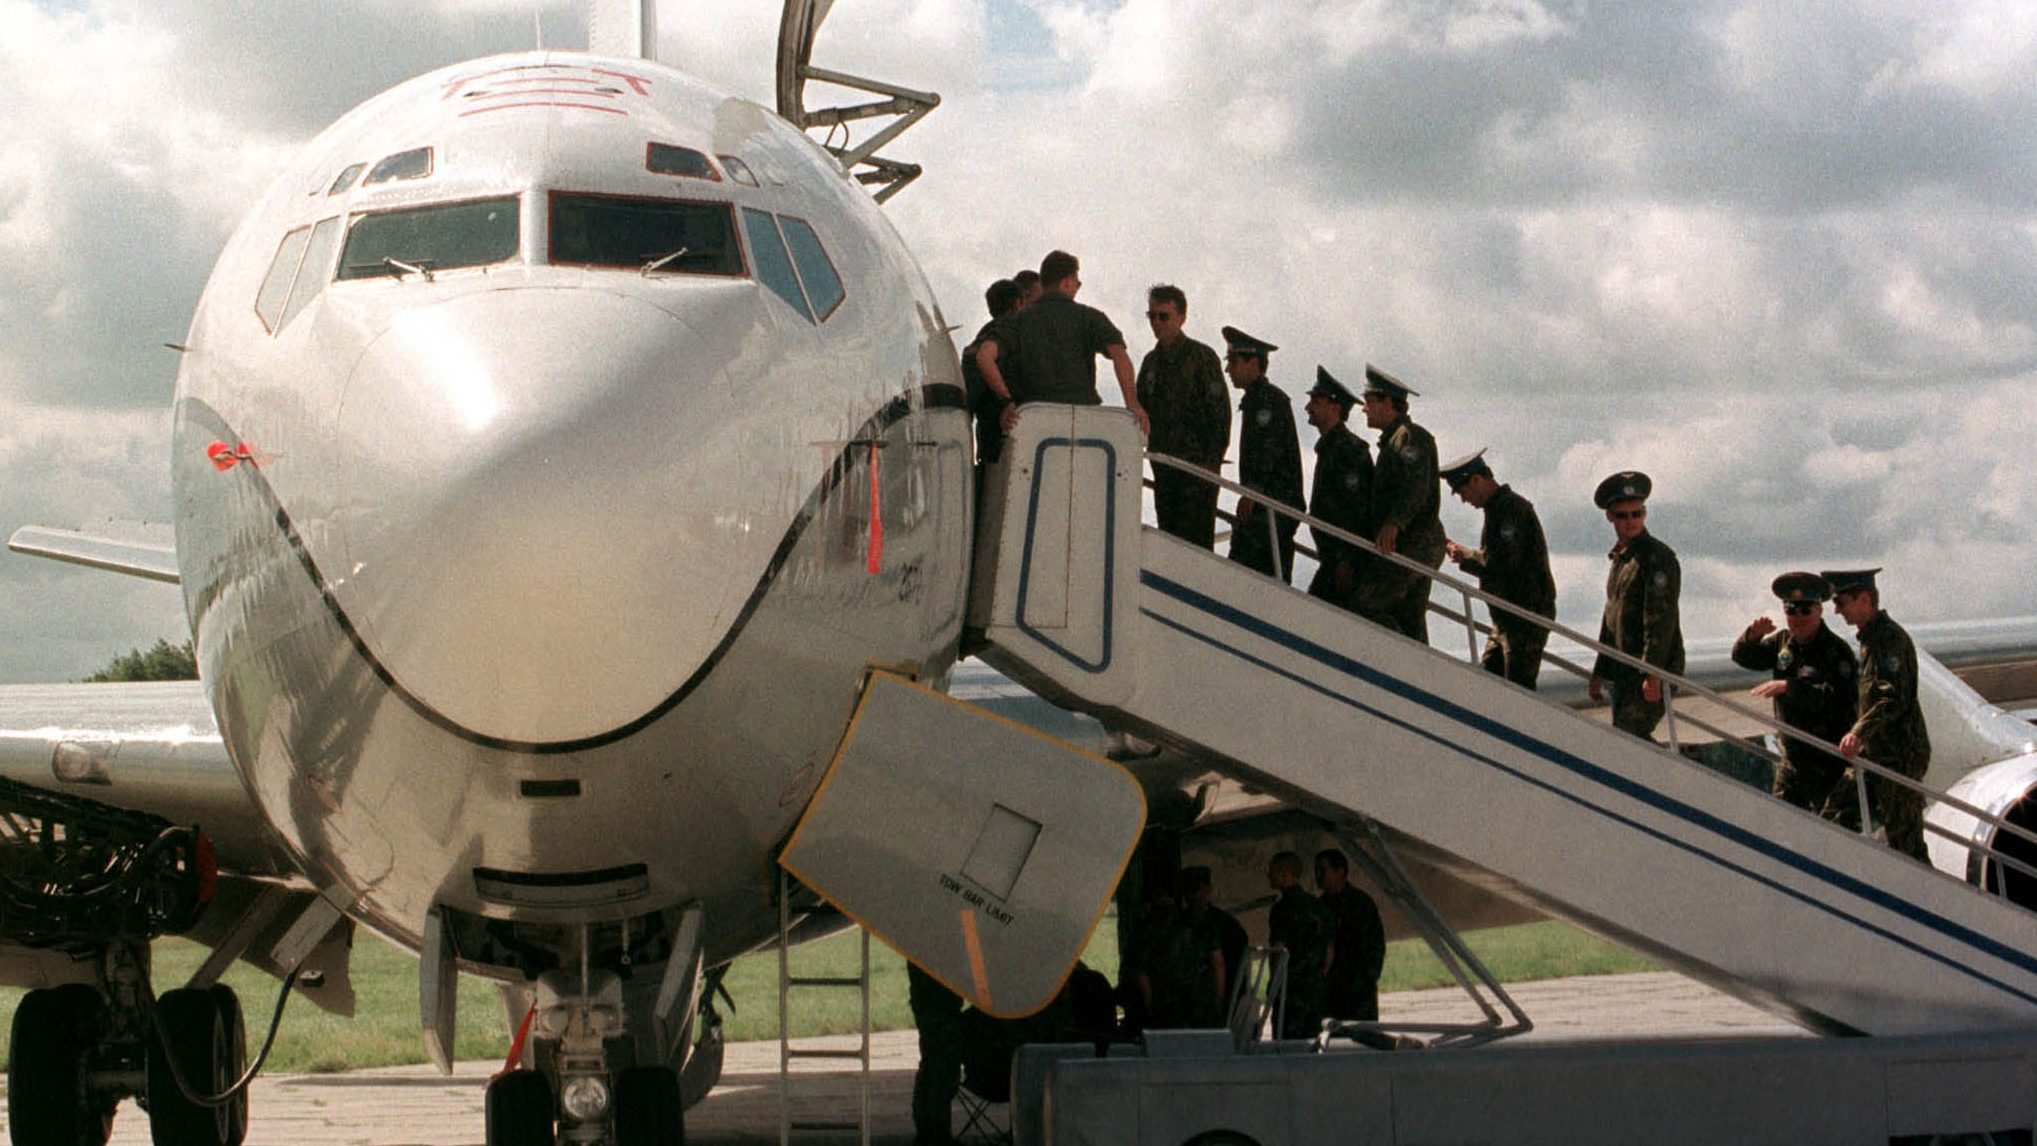 Russia flying Open Skies reconnaissance missions over US